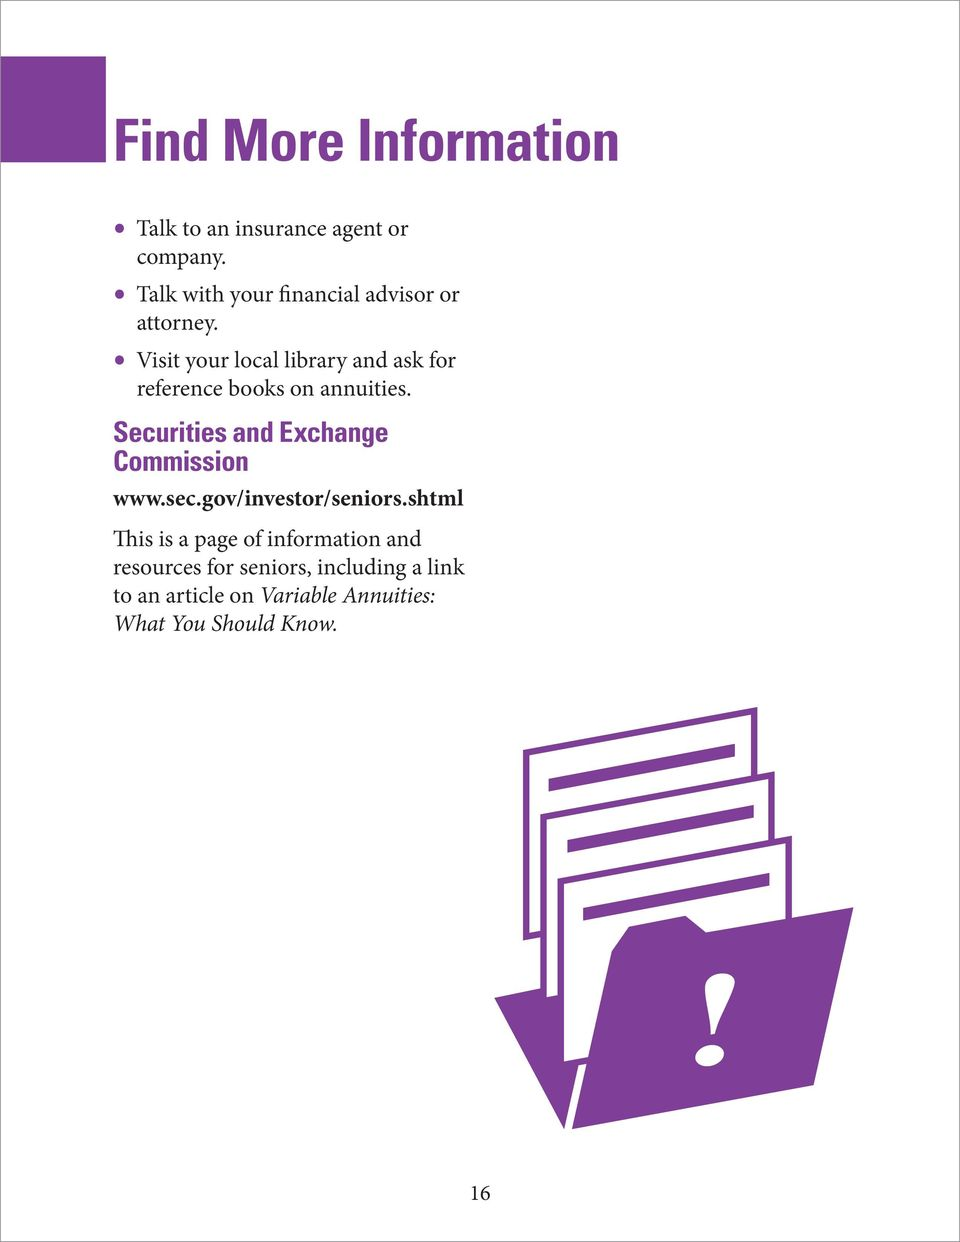 Visit your local library and ask for reference books on annuities.